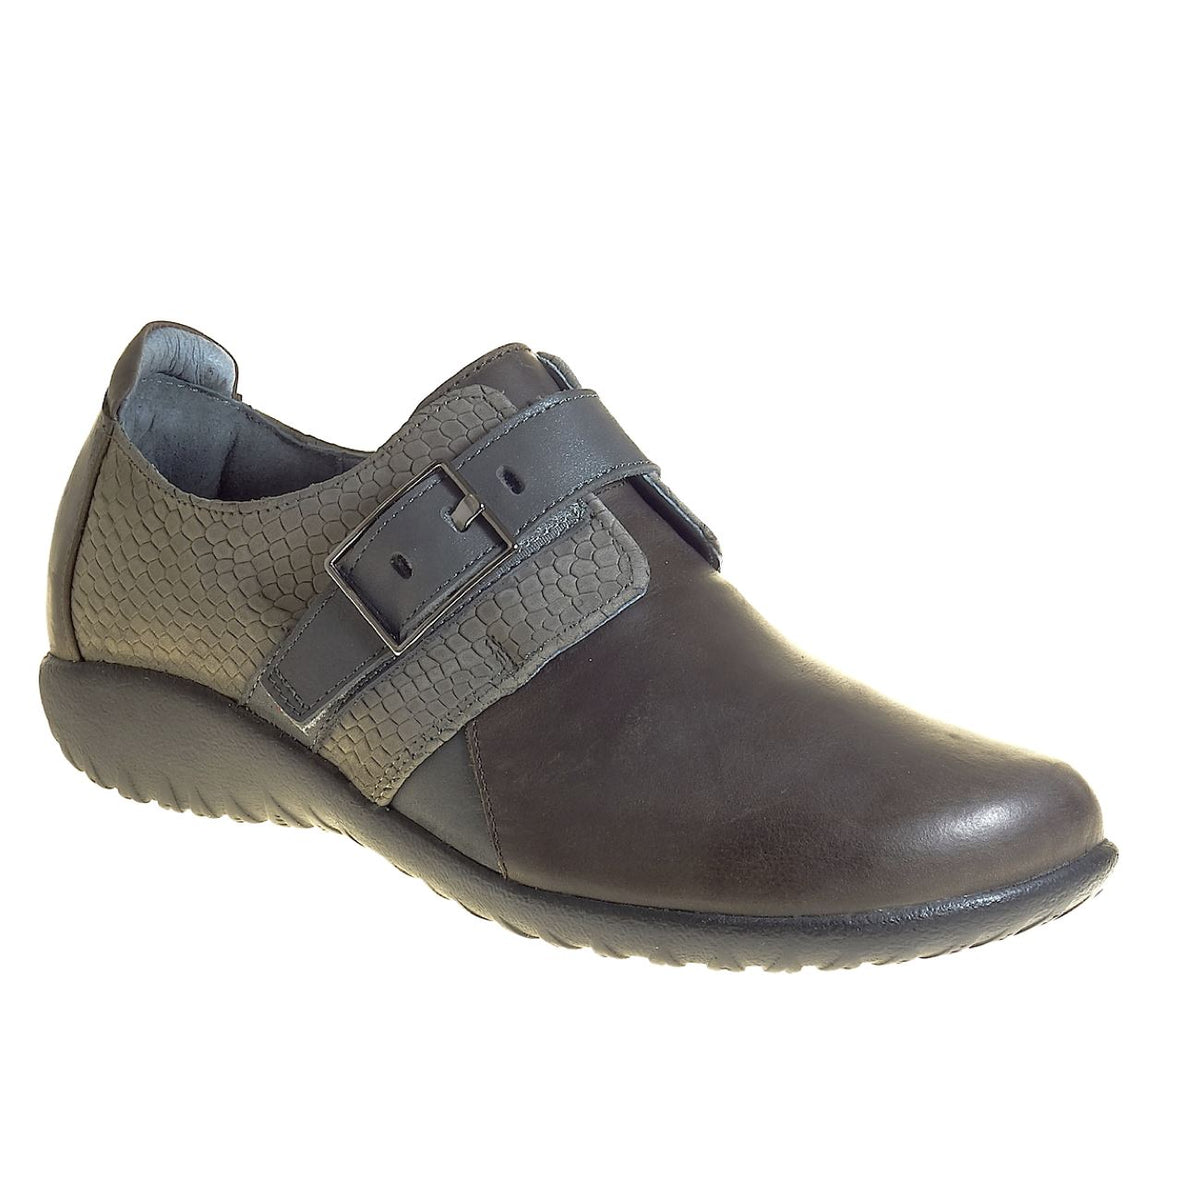 NAOT, Tane, Shoes, Leather, Brown Haze Combo Shoes Naot Brown Haze Combo 36